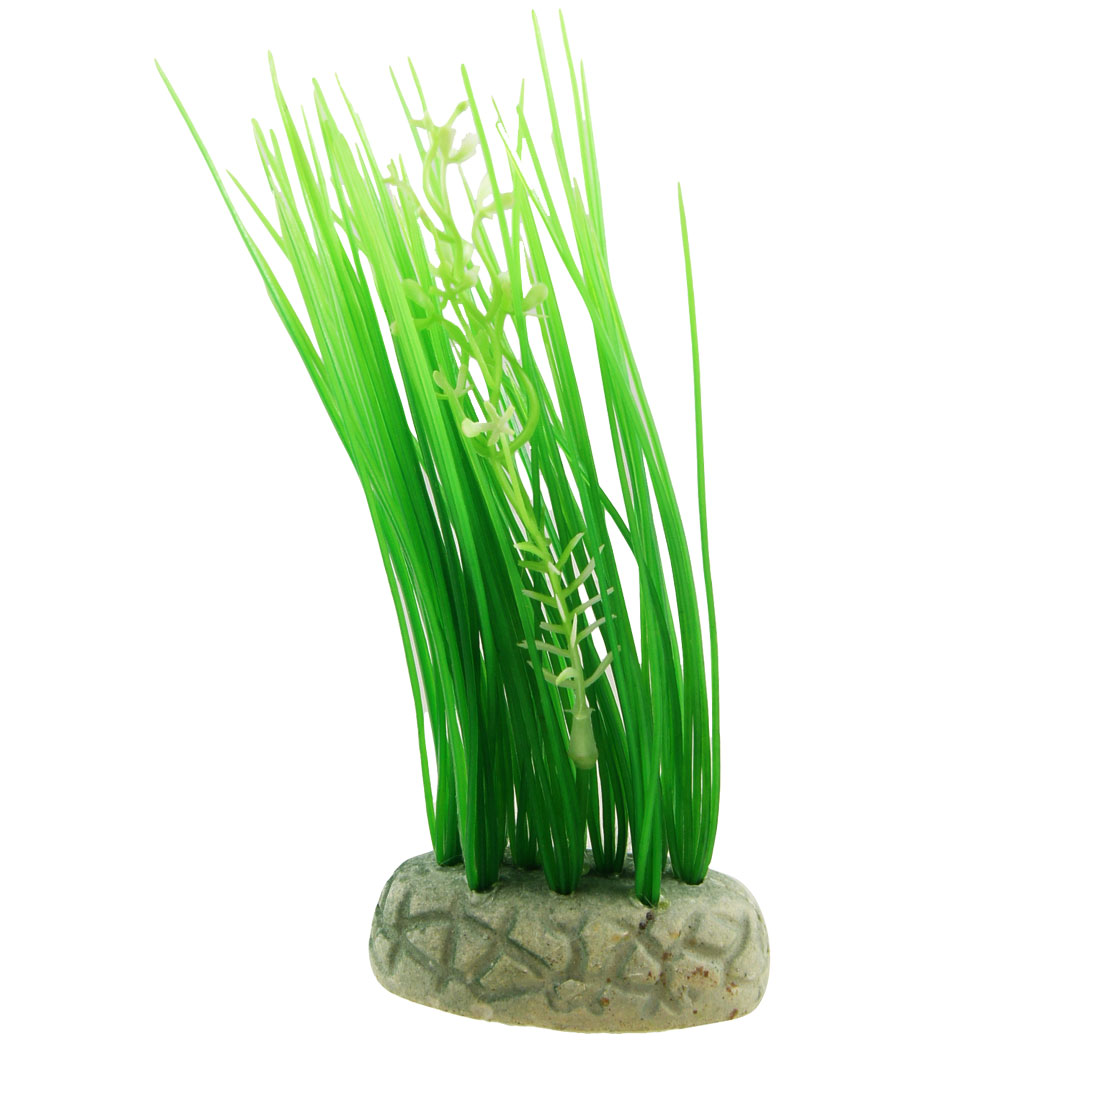 "7.5"" Height Green Artificial Grass for Fish Tank Decor"